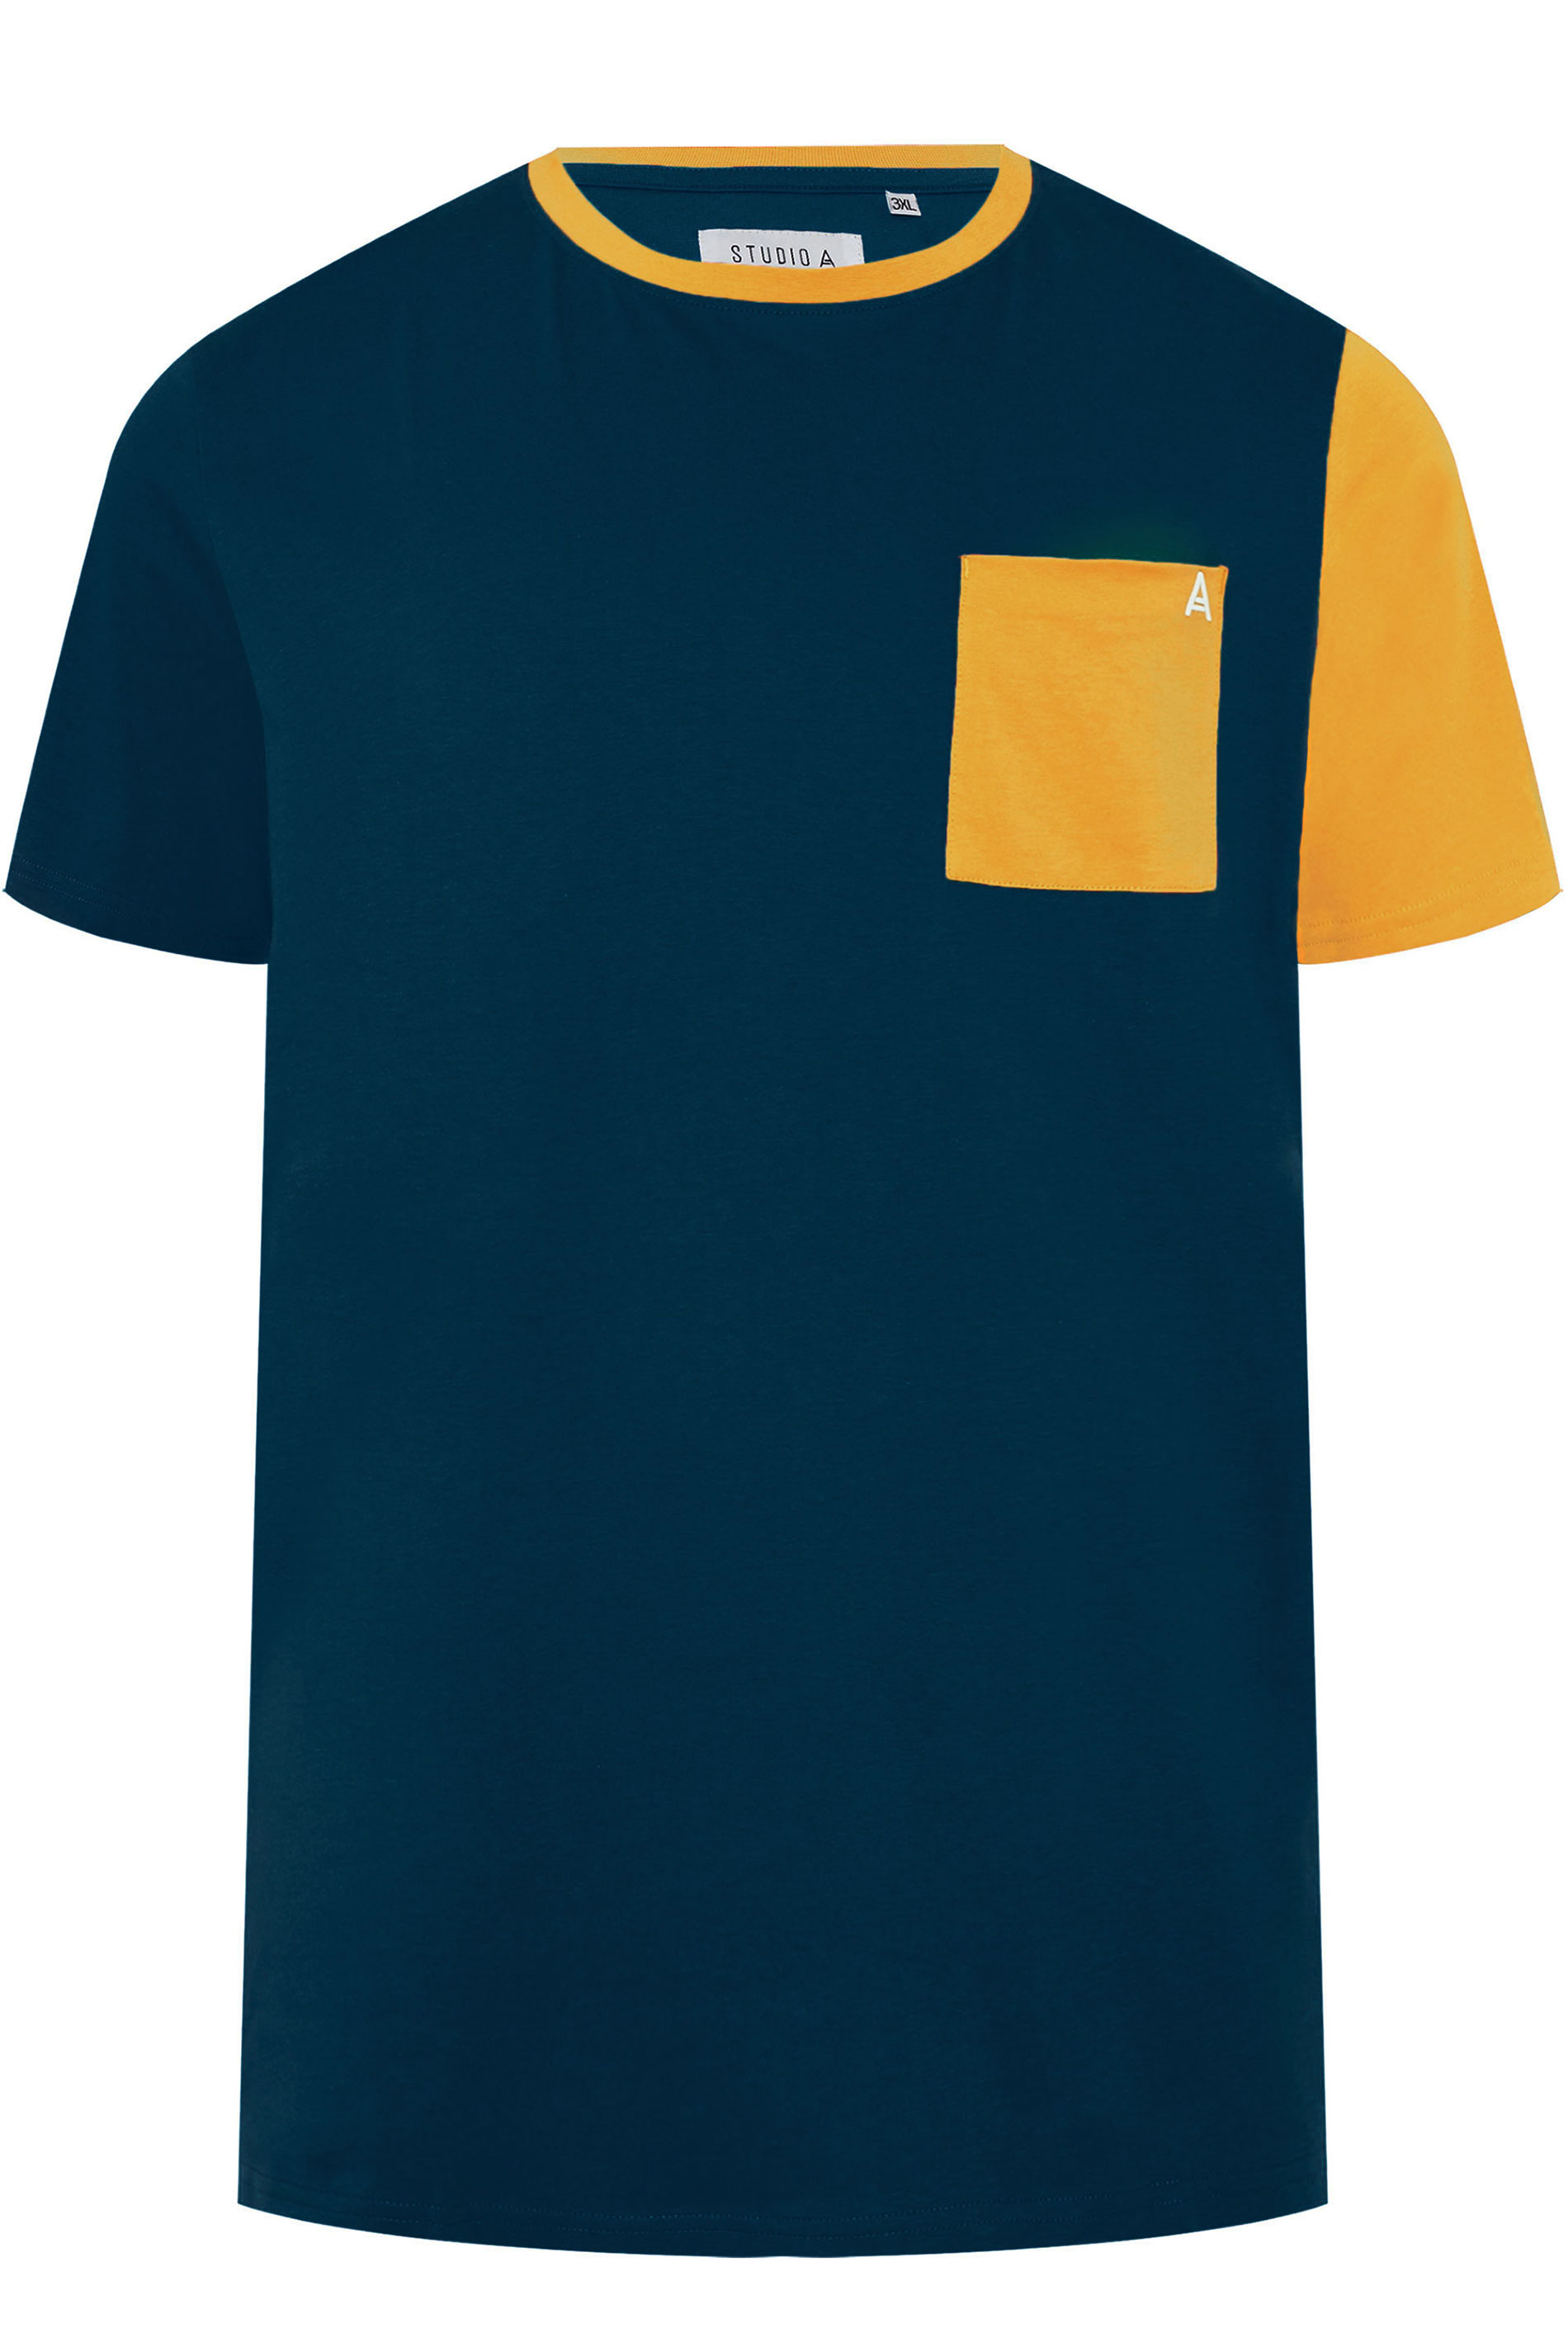 STUDIO A Navy & Yellow Colour Block T-Shirt